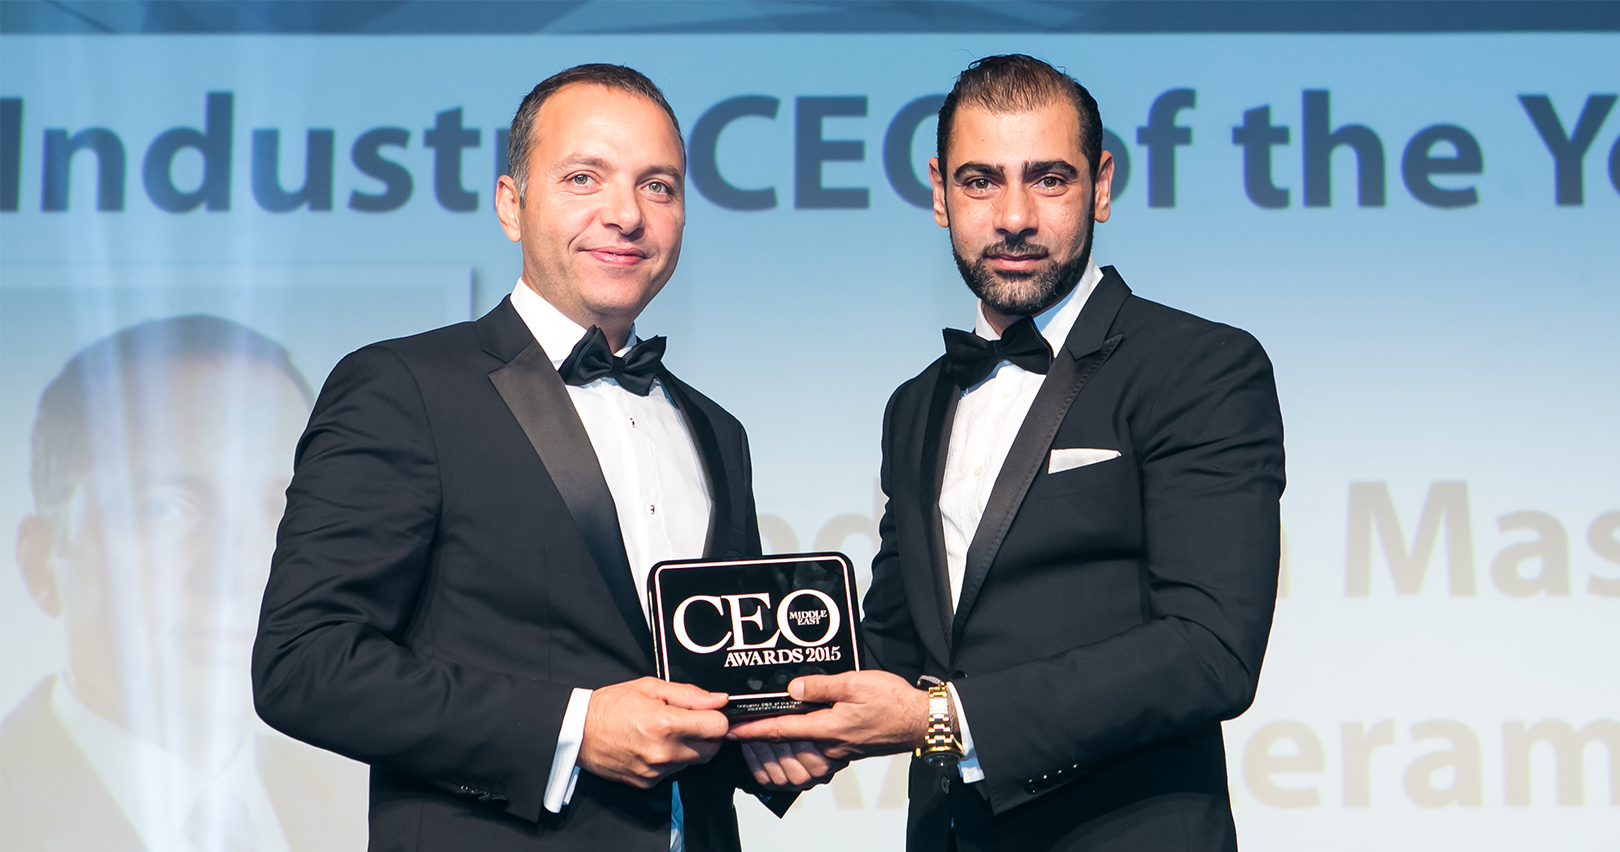 Abdallah Massaad Awarded Industry CEO of the Year by Arabian Business